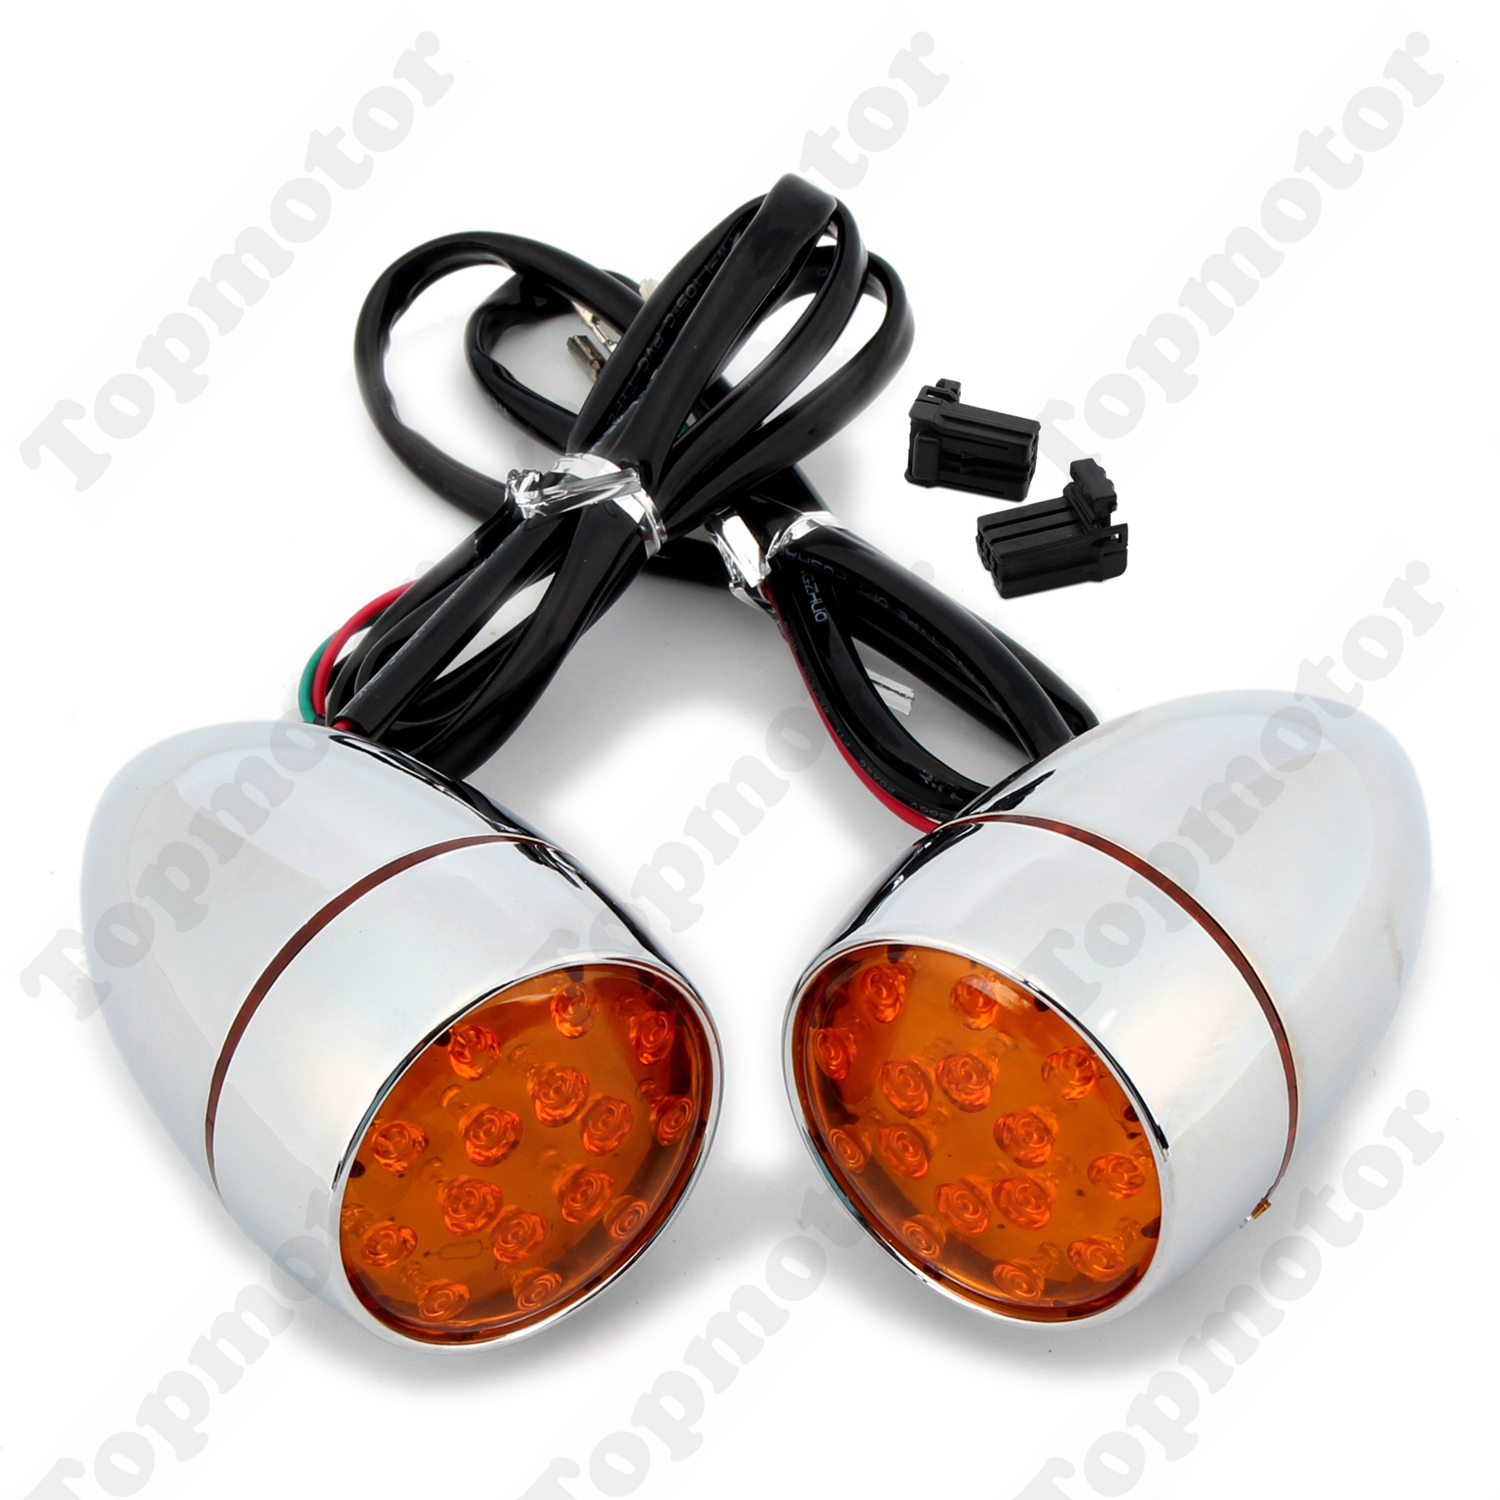 Chrome Bullet LED Motorcycle Parts Turn Signal Motorcycle Light For Harley Sportster Dyna Softail Road King XL motorcycle flashing turn signal lights led turn signals flasher for harley softail road king electra glide classic 95 13